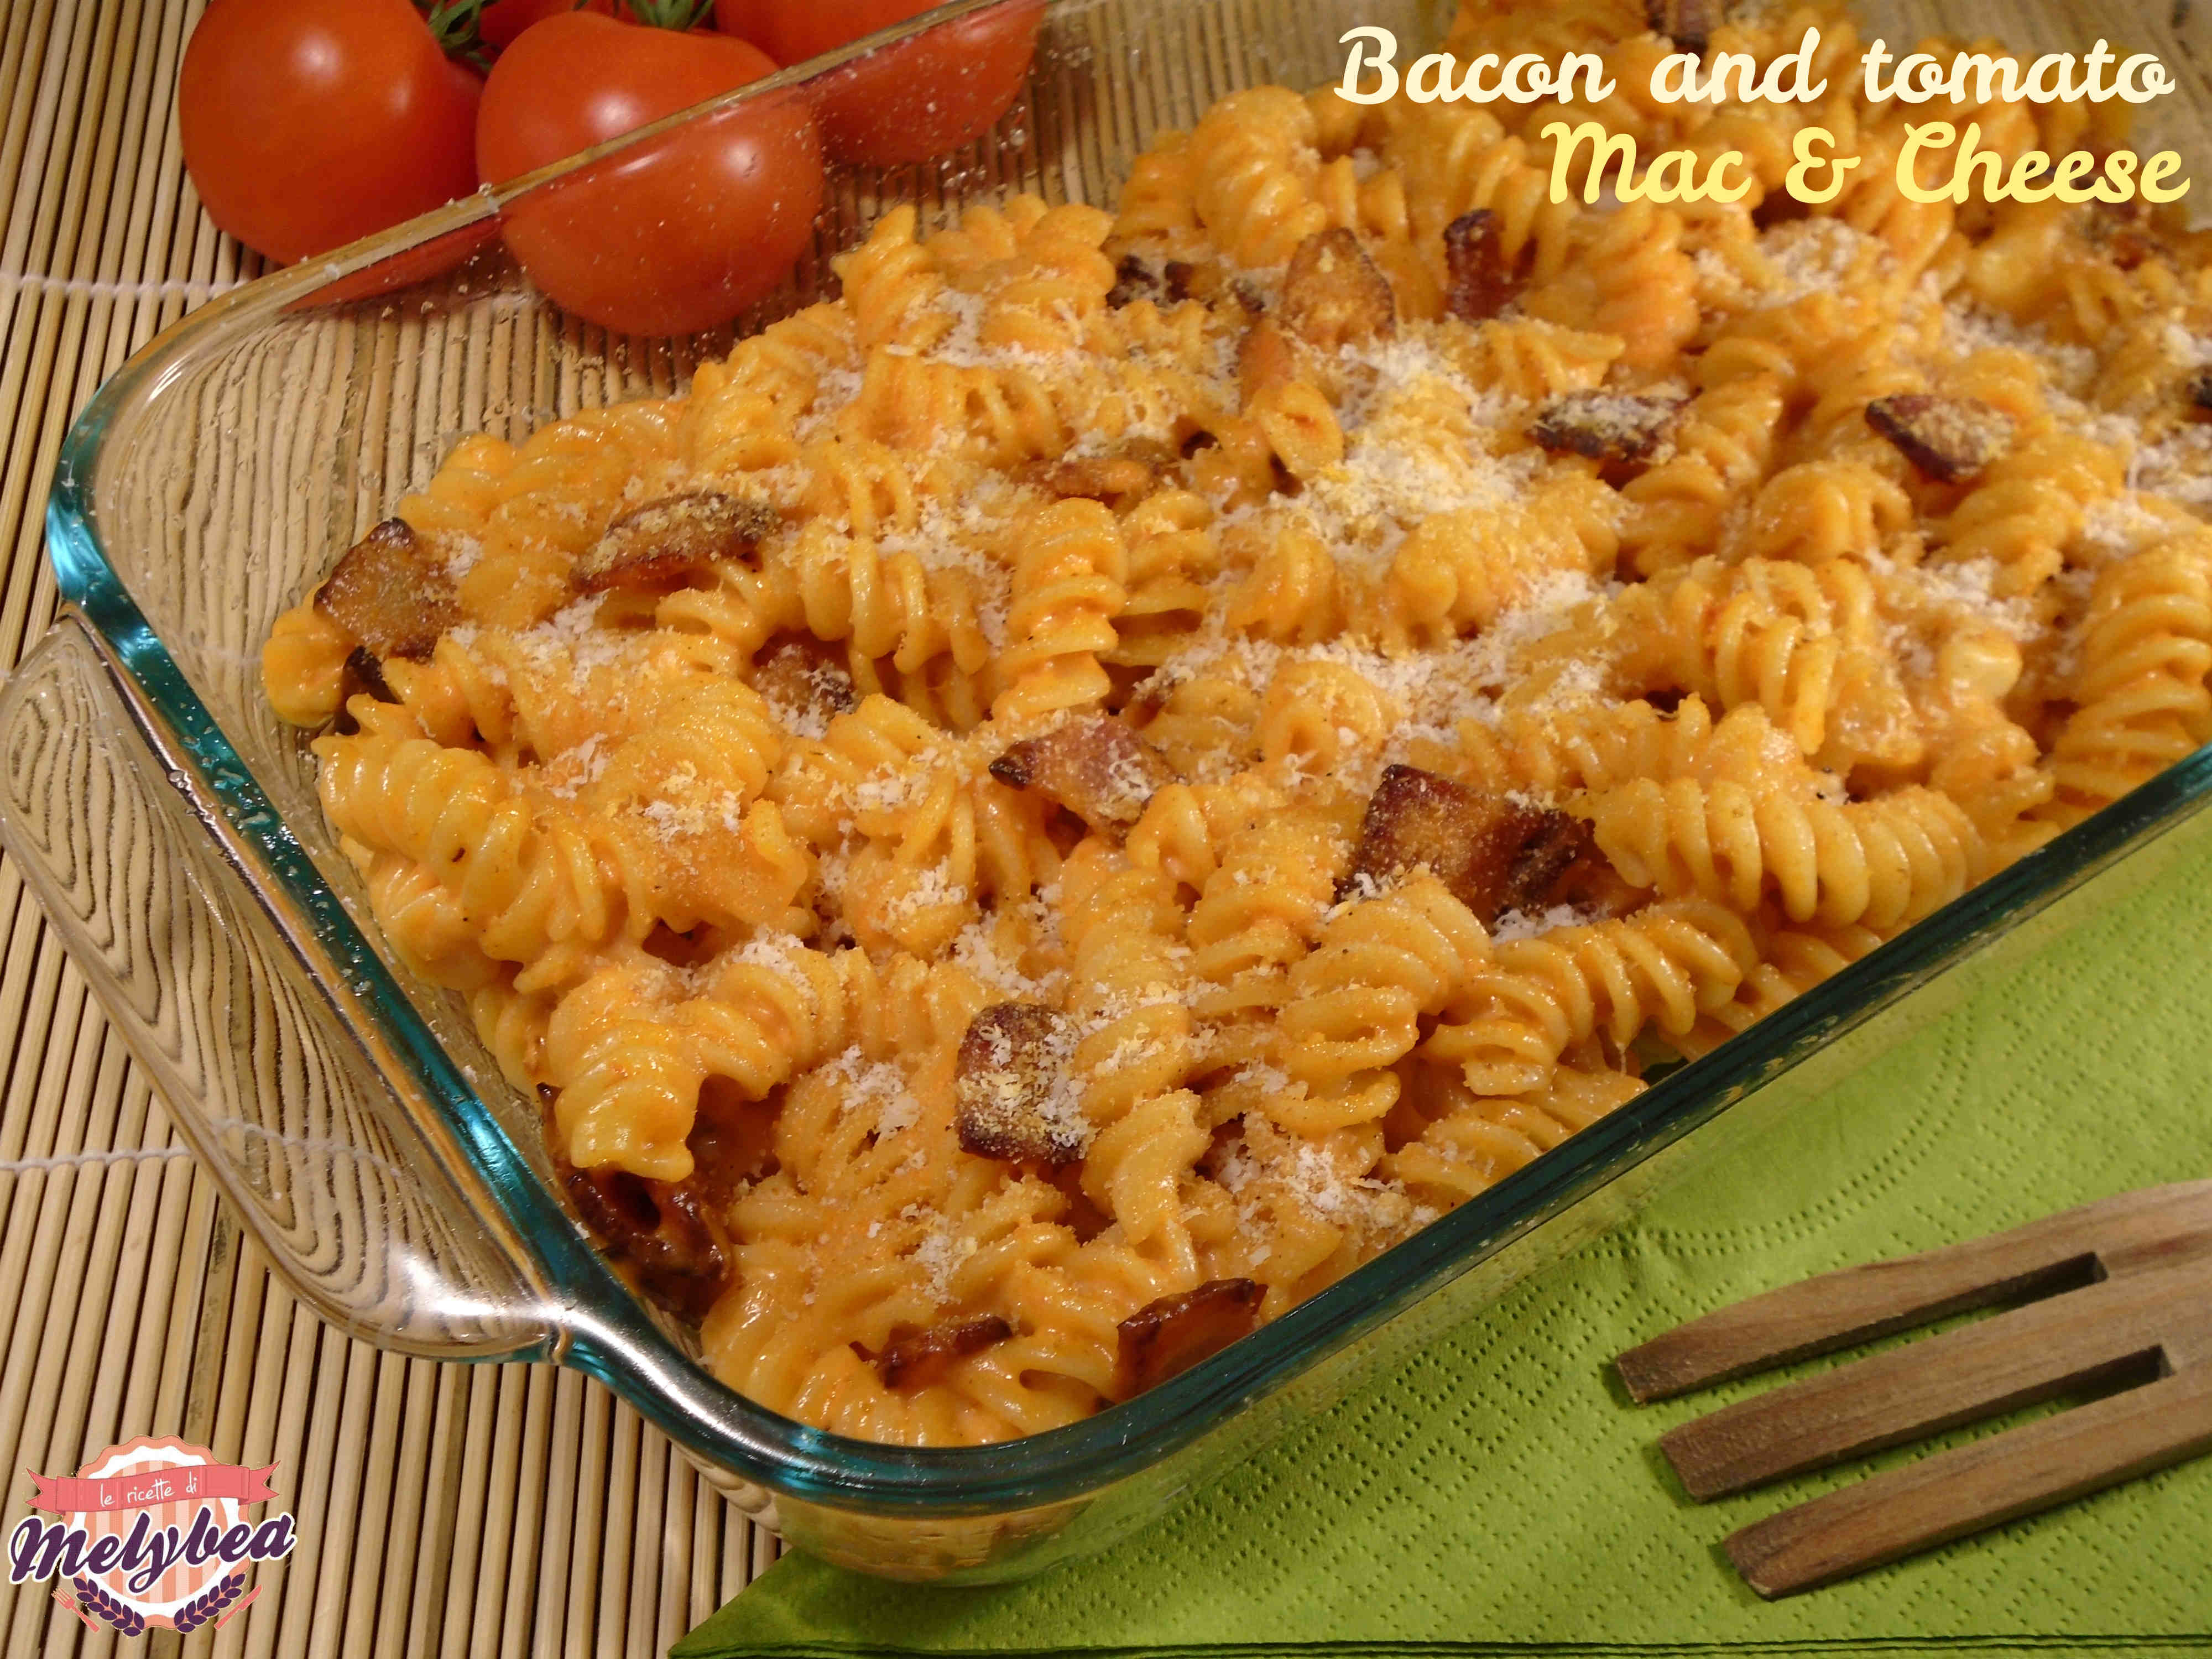 Bacon and tomato Mac and Cheese